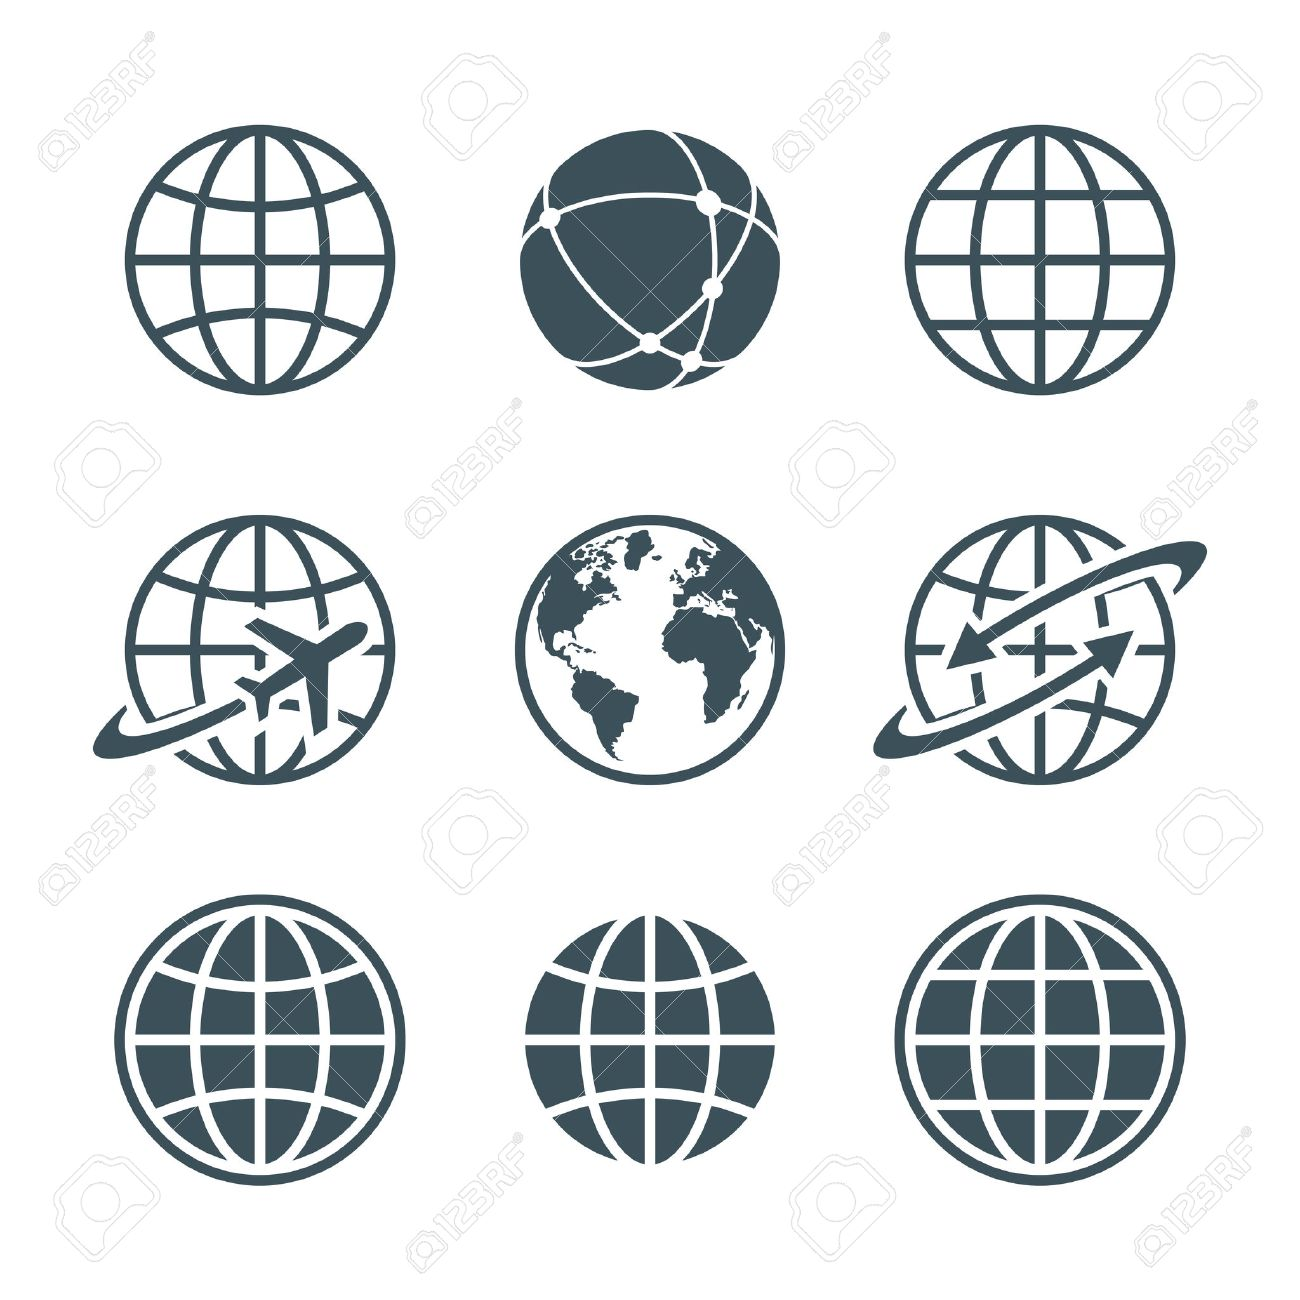 globe, earth, world icons set isolated on white background. ball wire, globe and airplane, globe with arrow. vector illustration - 43909637